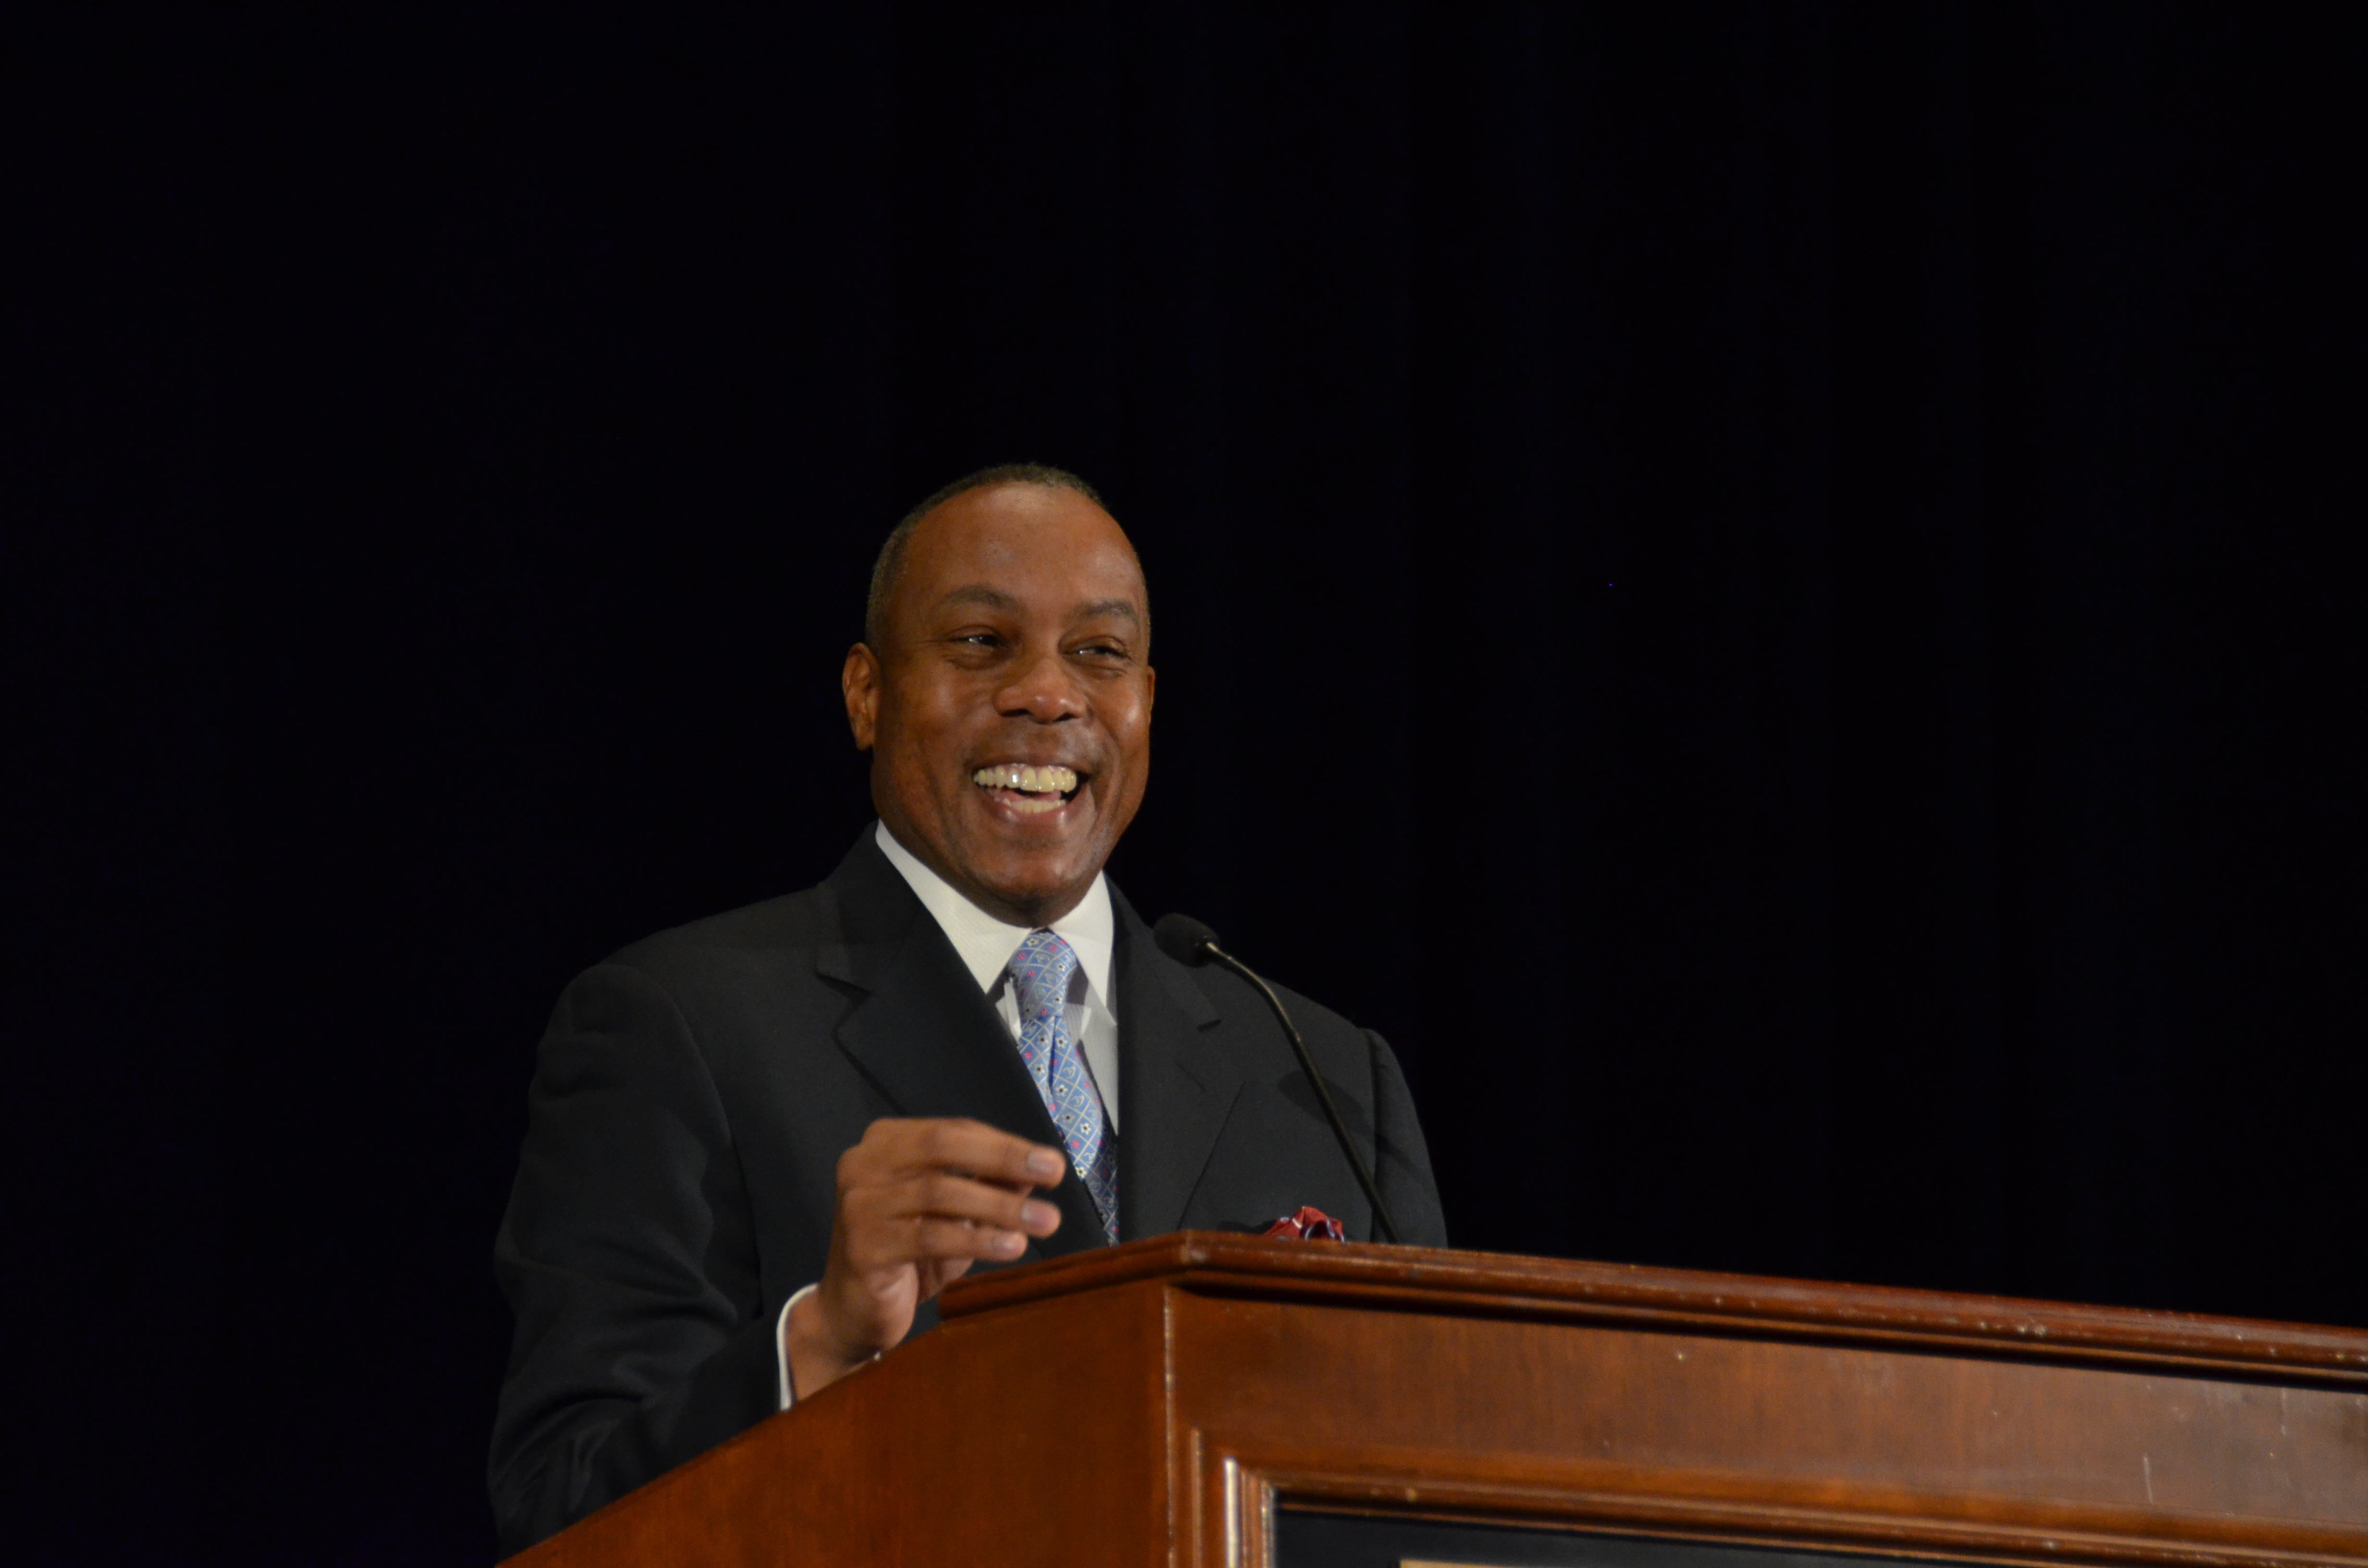 ESPN anchor Jay Harris gives a speech in front of thousands of high school journalists at this years JEA/NSPA Fall Convention. Photo by Thomas Oide.